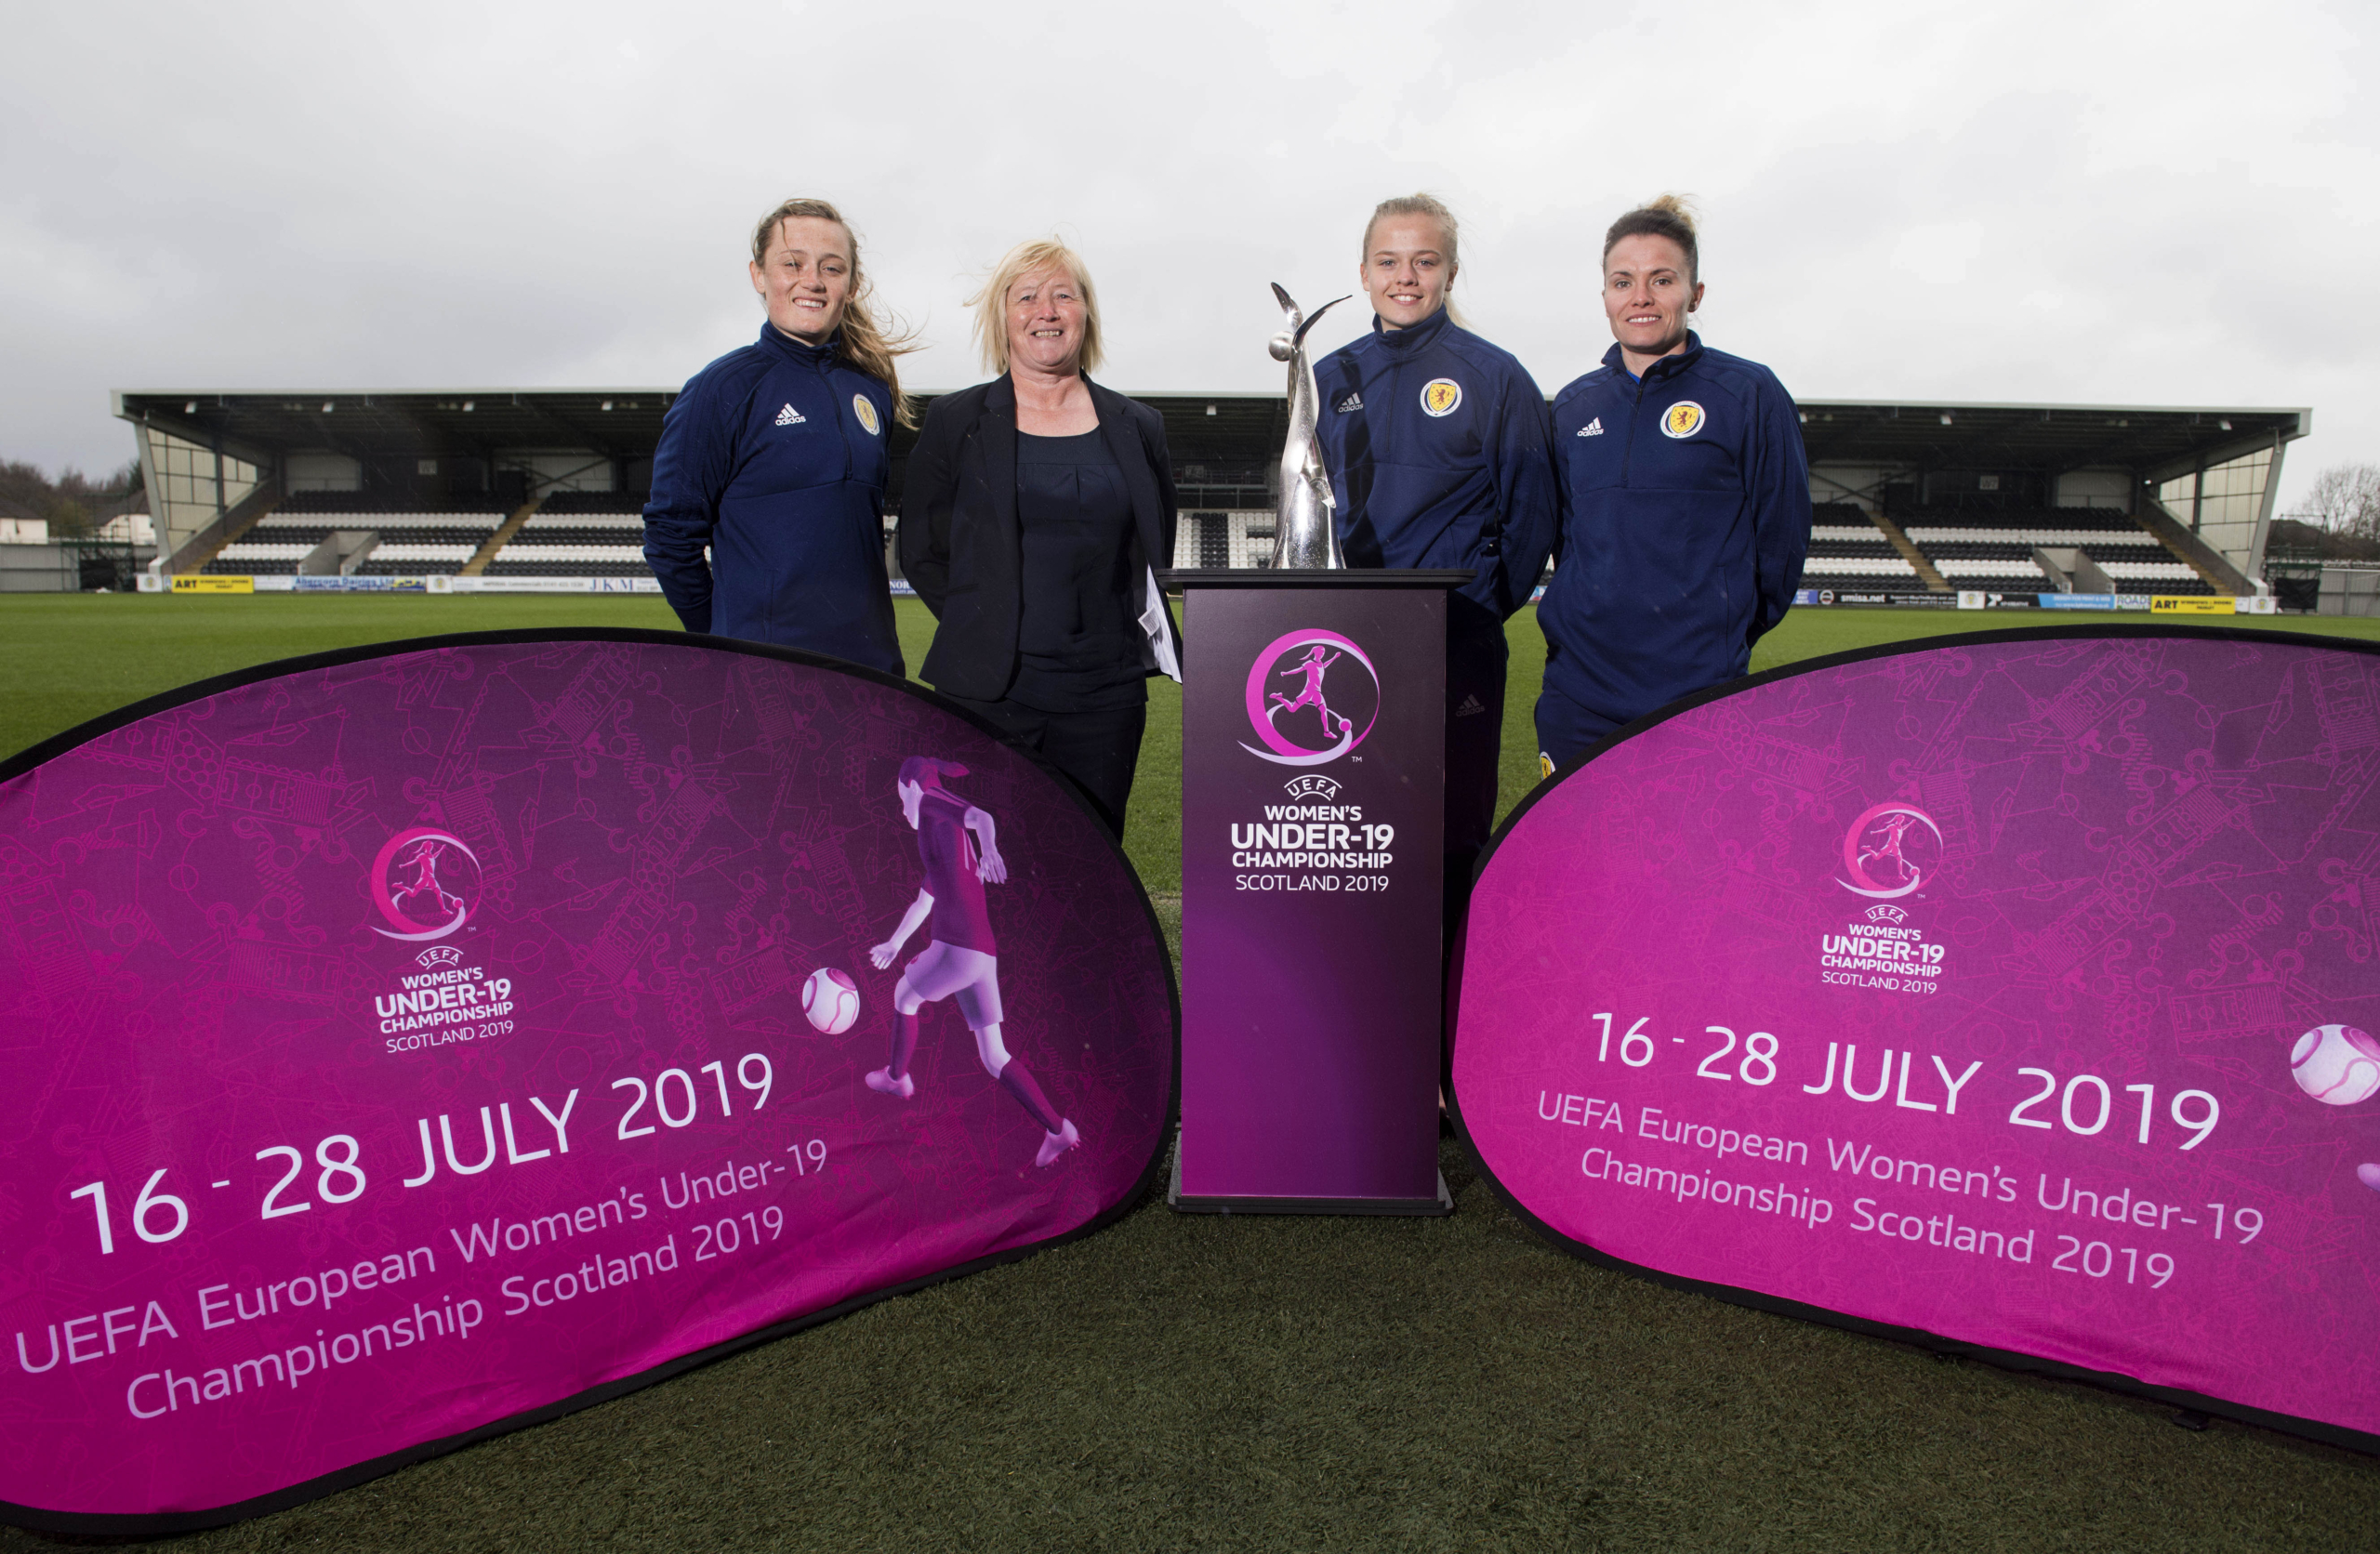 Scotland stars Erin Cuthbert (l) and Jo Love (r) join U19s Coach Pauline Hamill and Captain Amy Muir to promote the tournament